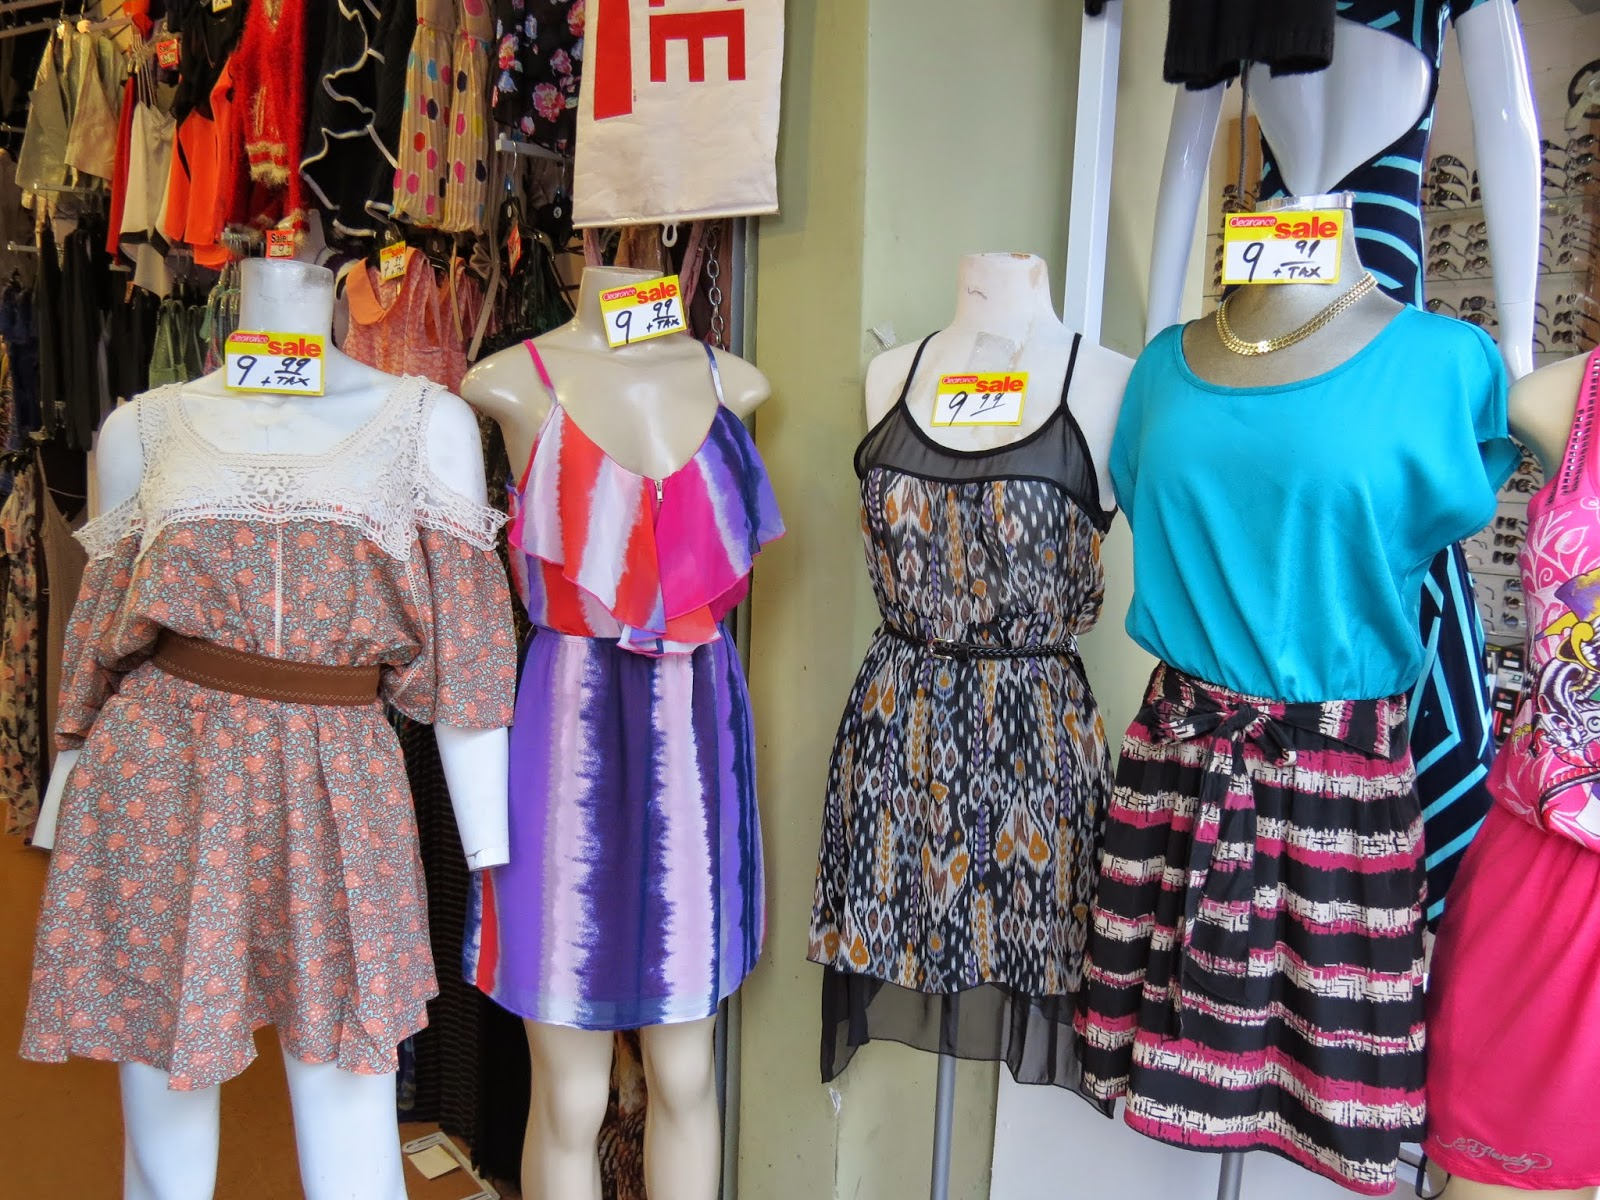 d365d3980 The Santee Alley  Santee Alley Bargains   9.99 Spring Dresses at Top ...